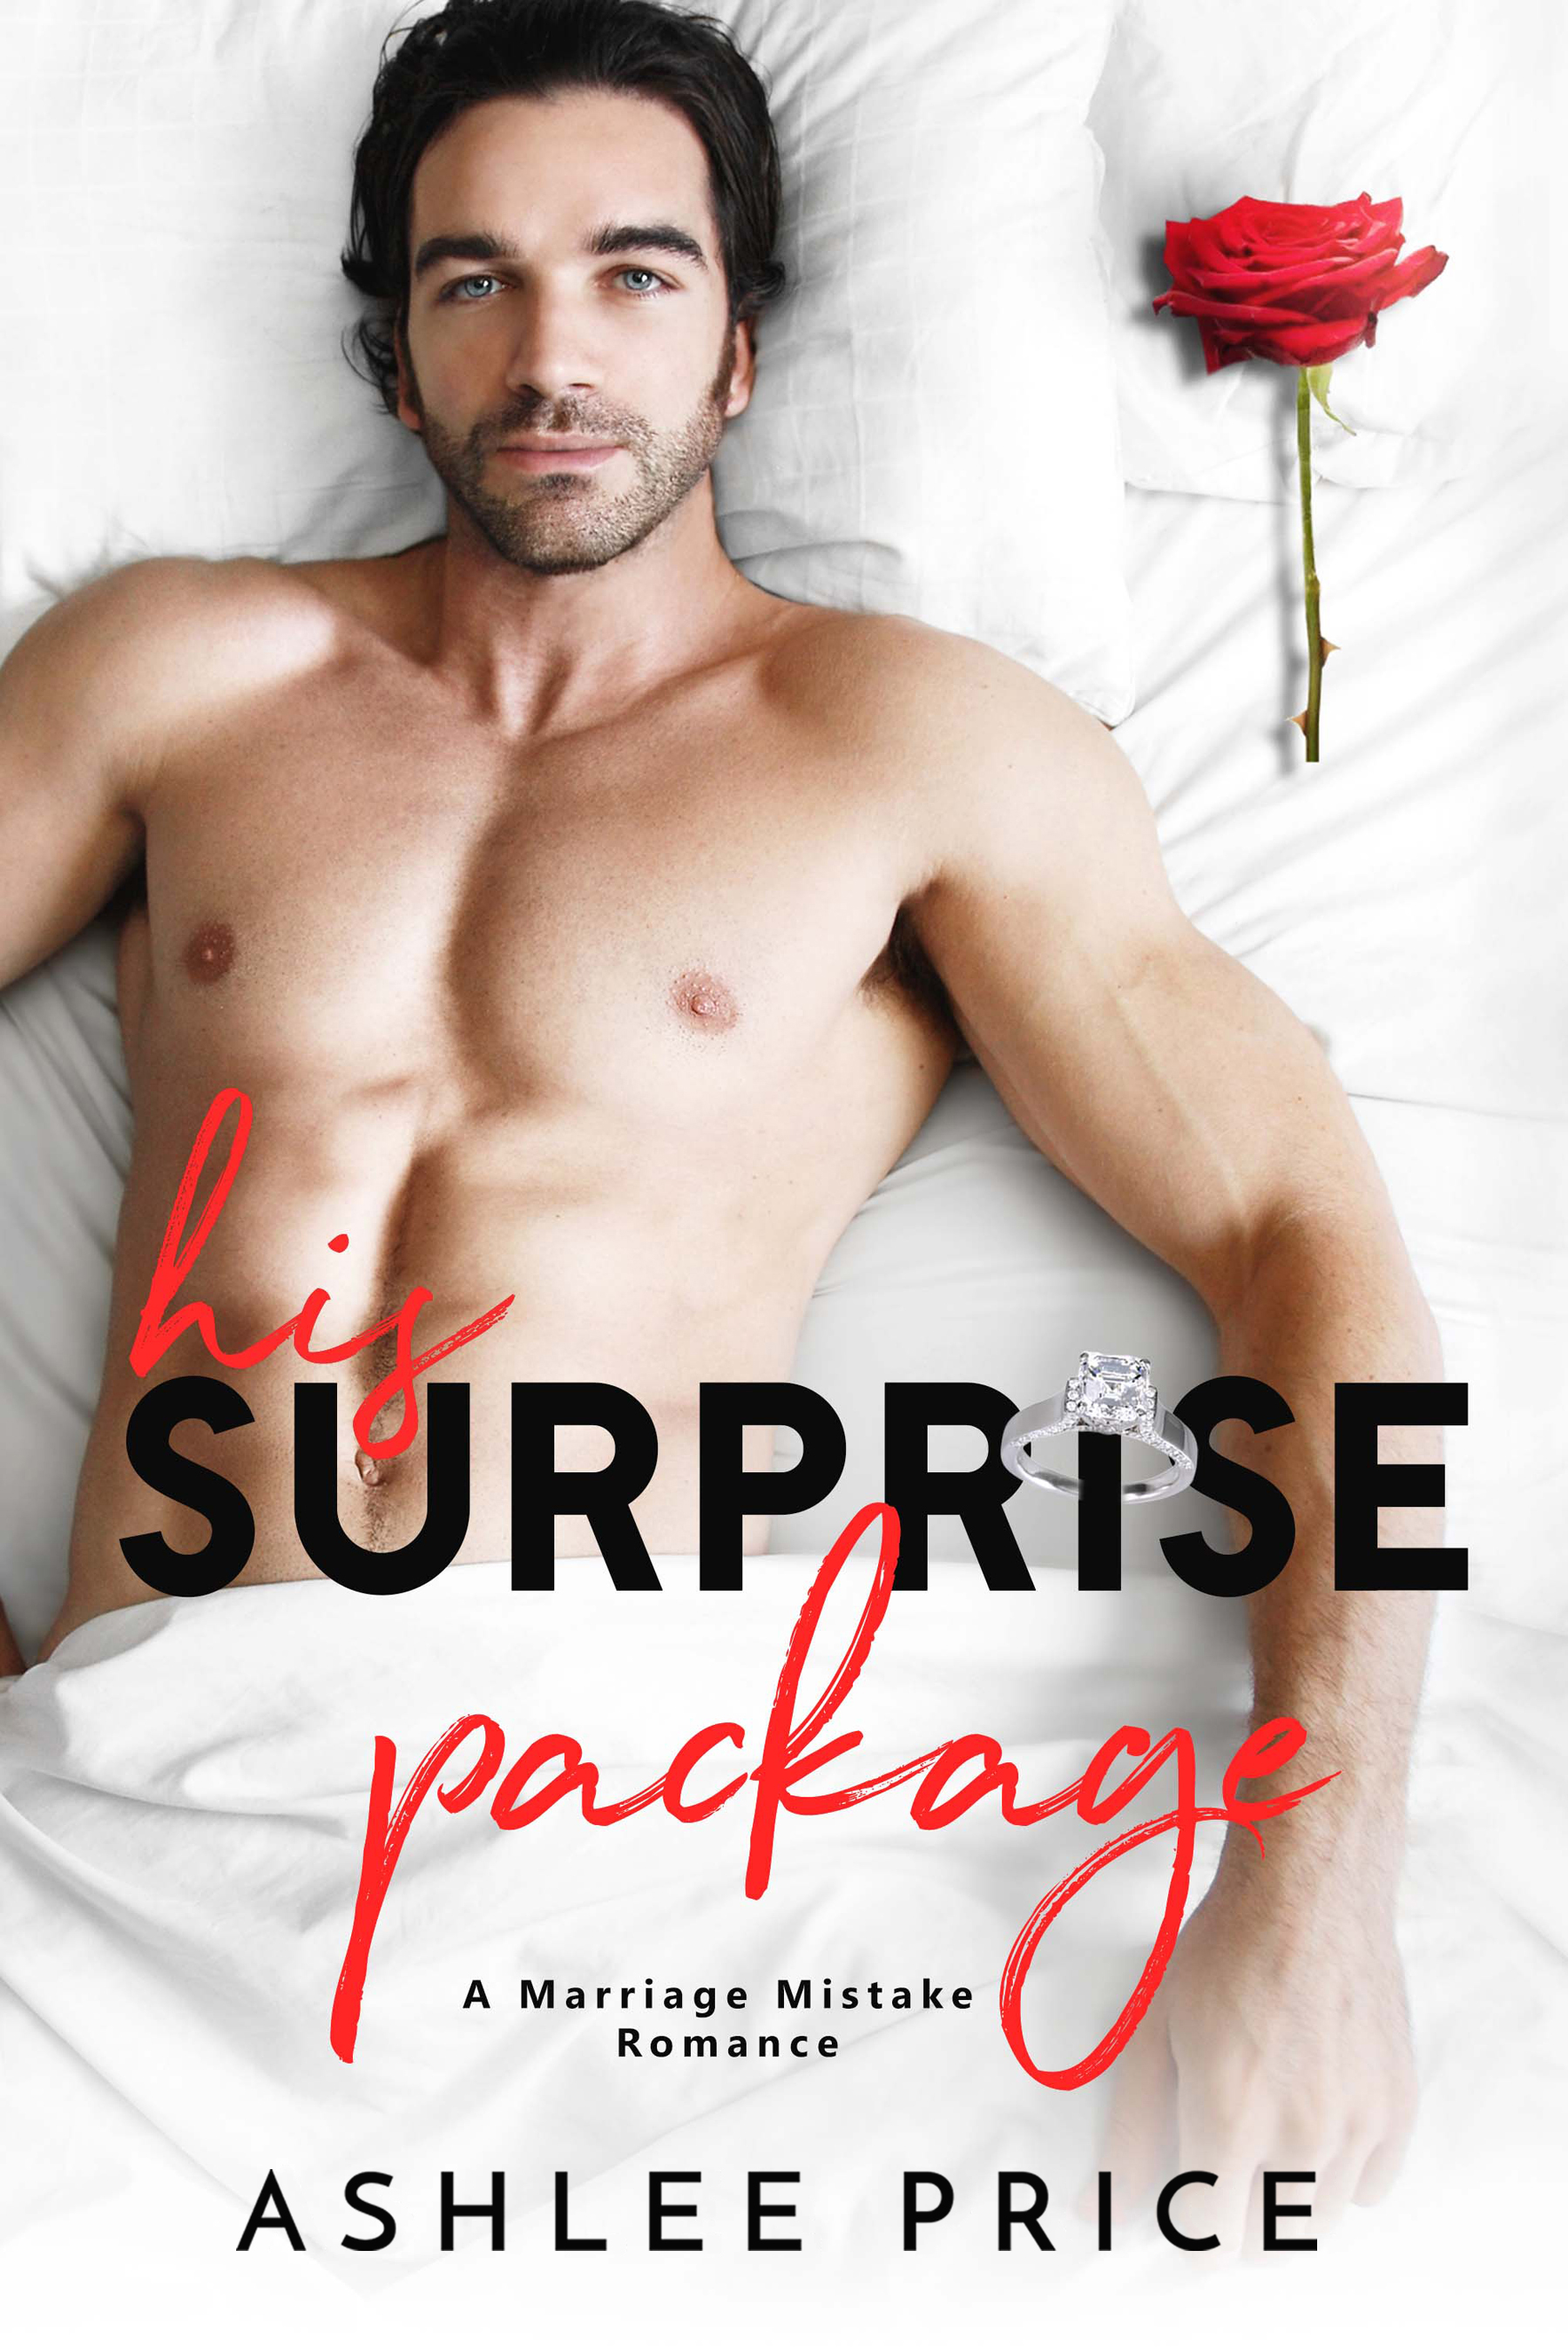 his surprise package 6x9 new.jpg